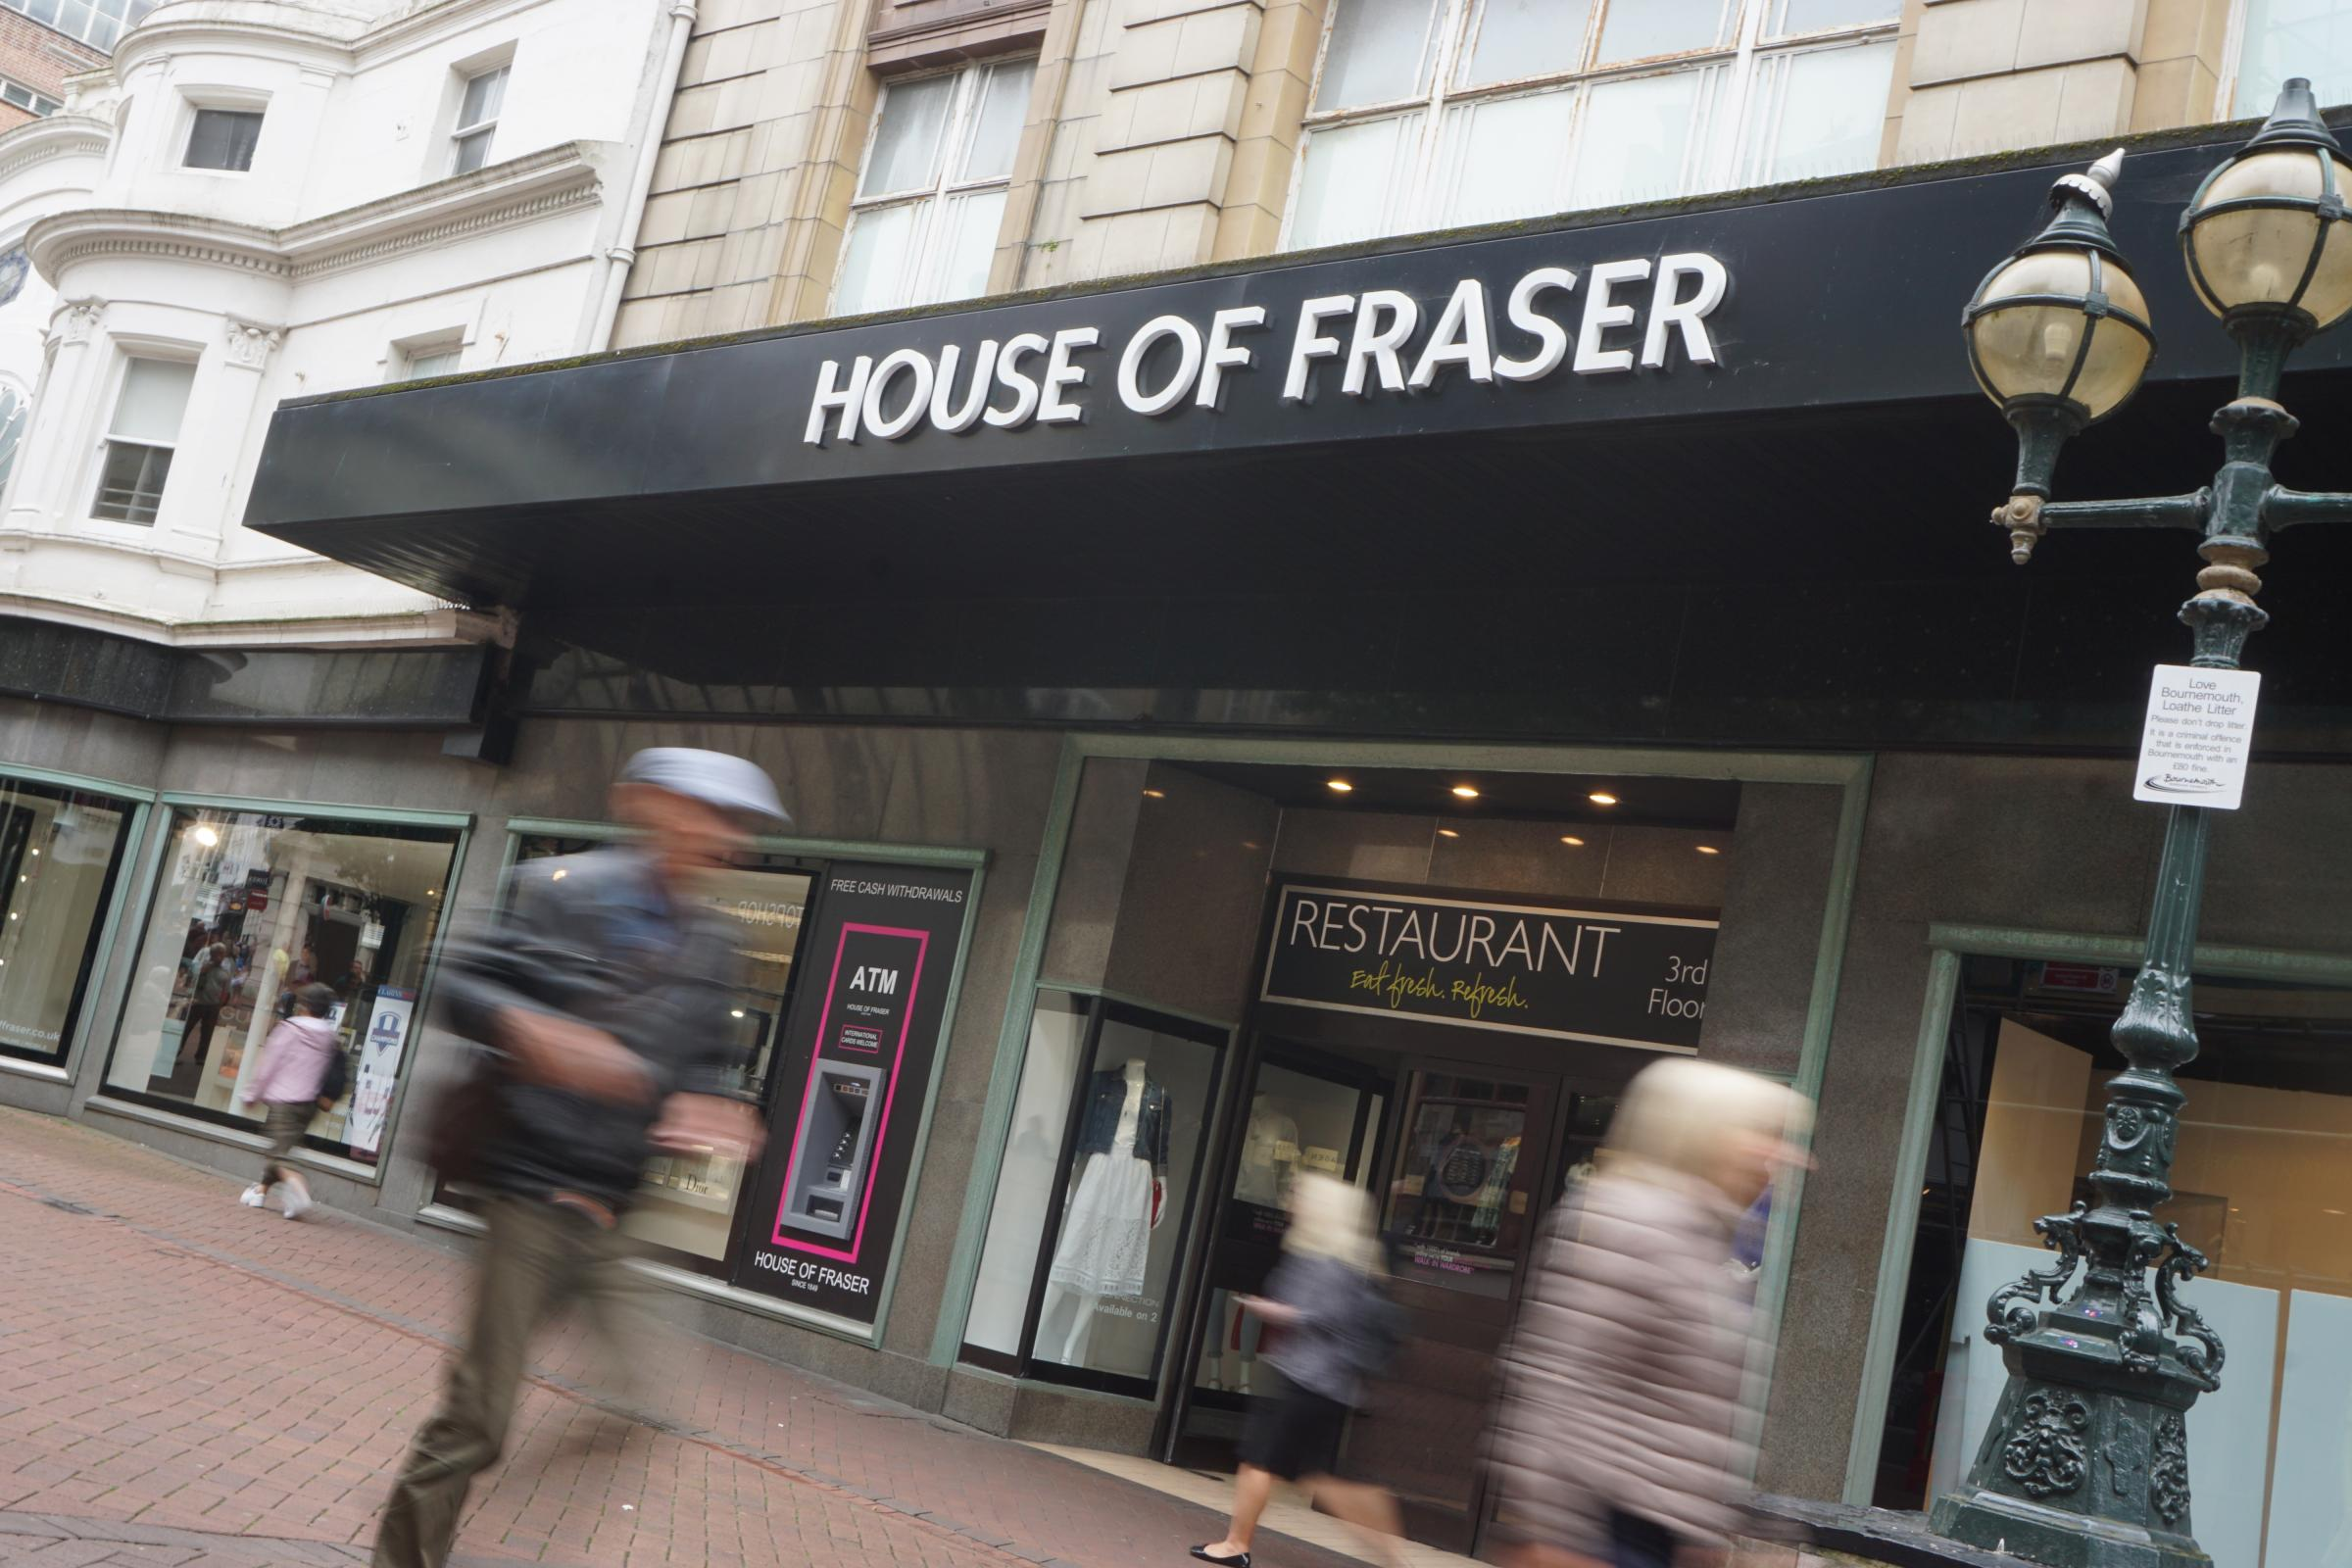 House of Fraser denies planning to close almost all stores